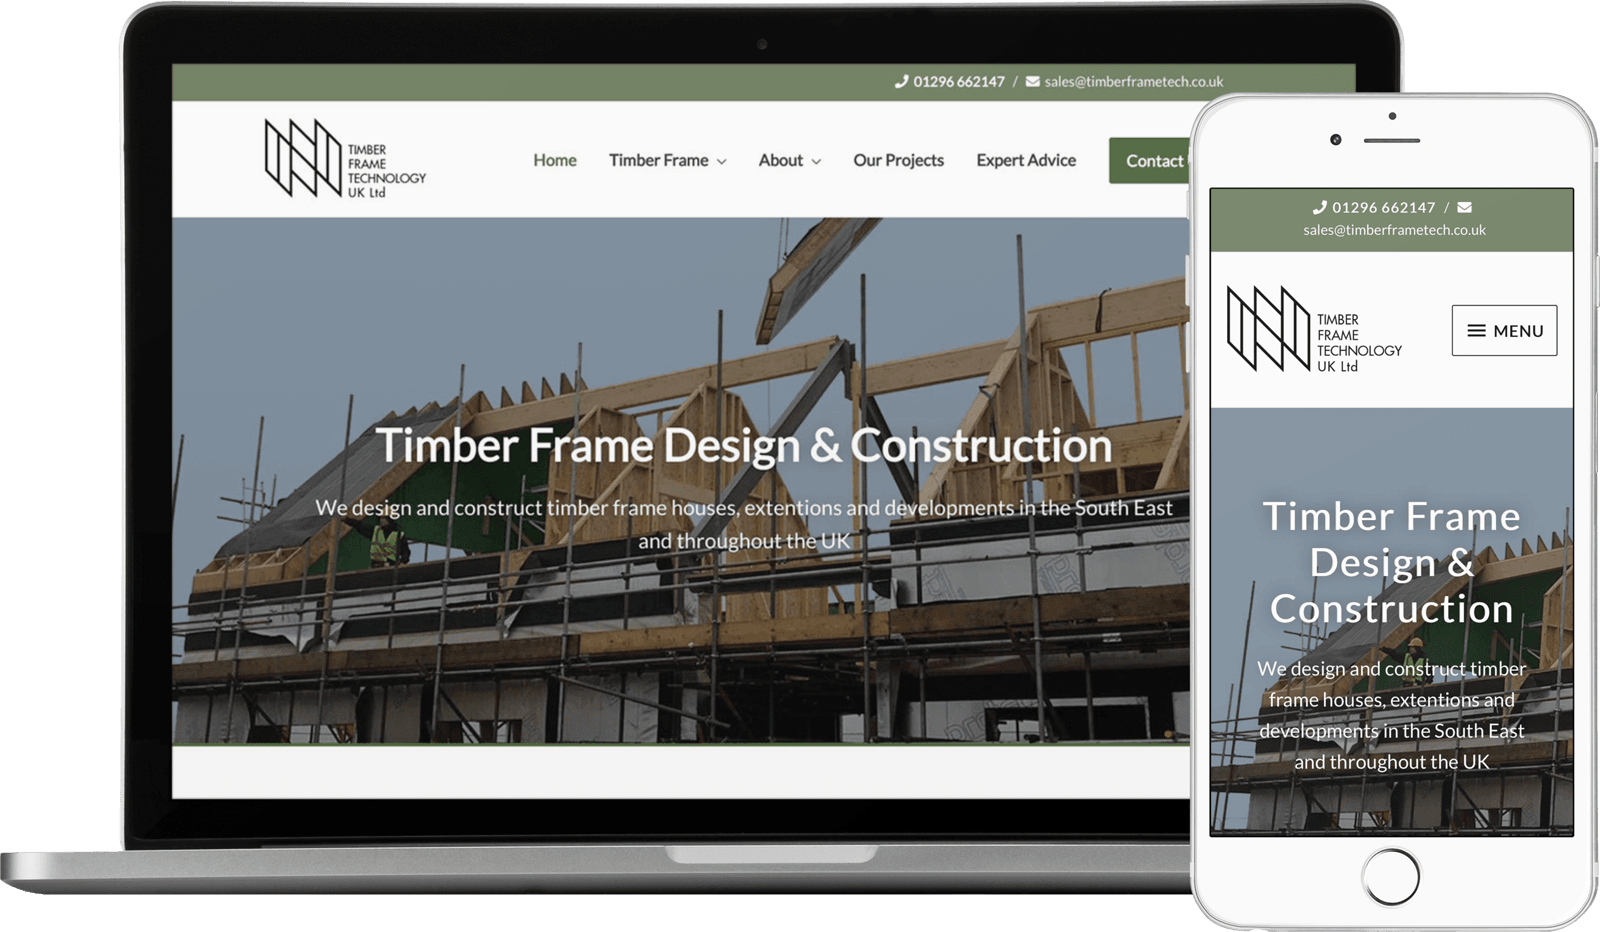 Macbook / iPhone view of The Timber Frame Technology website